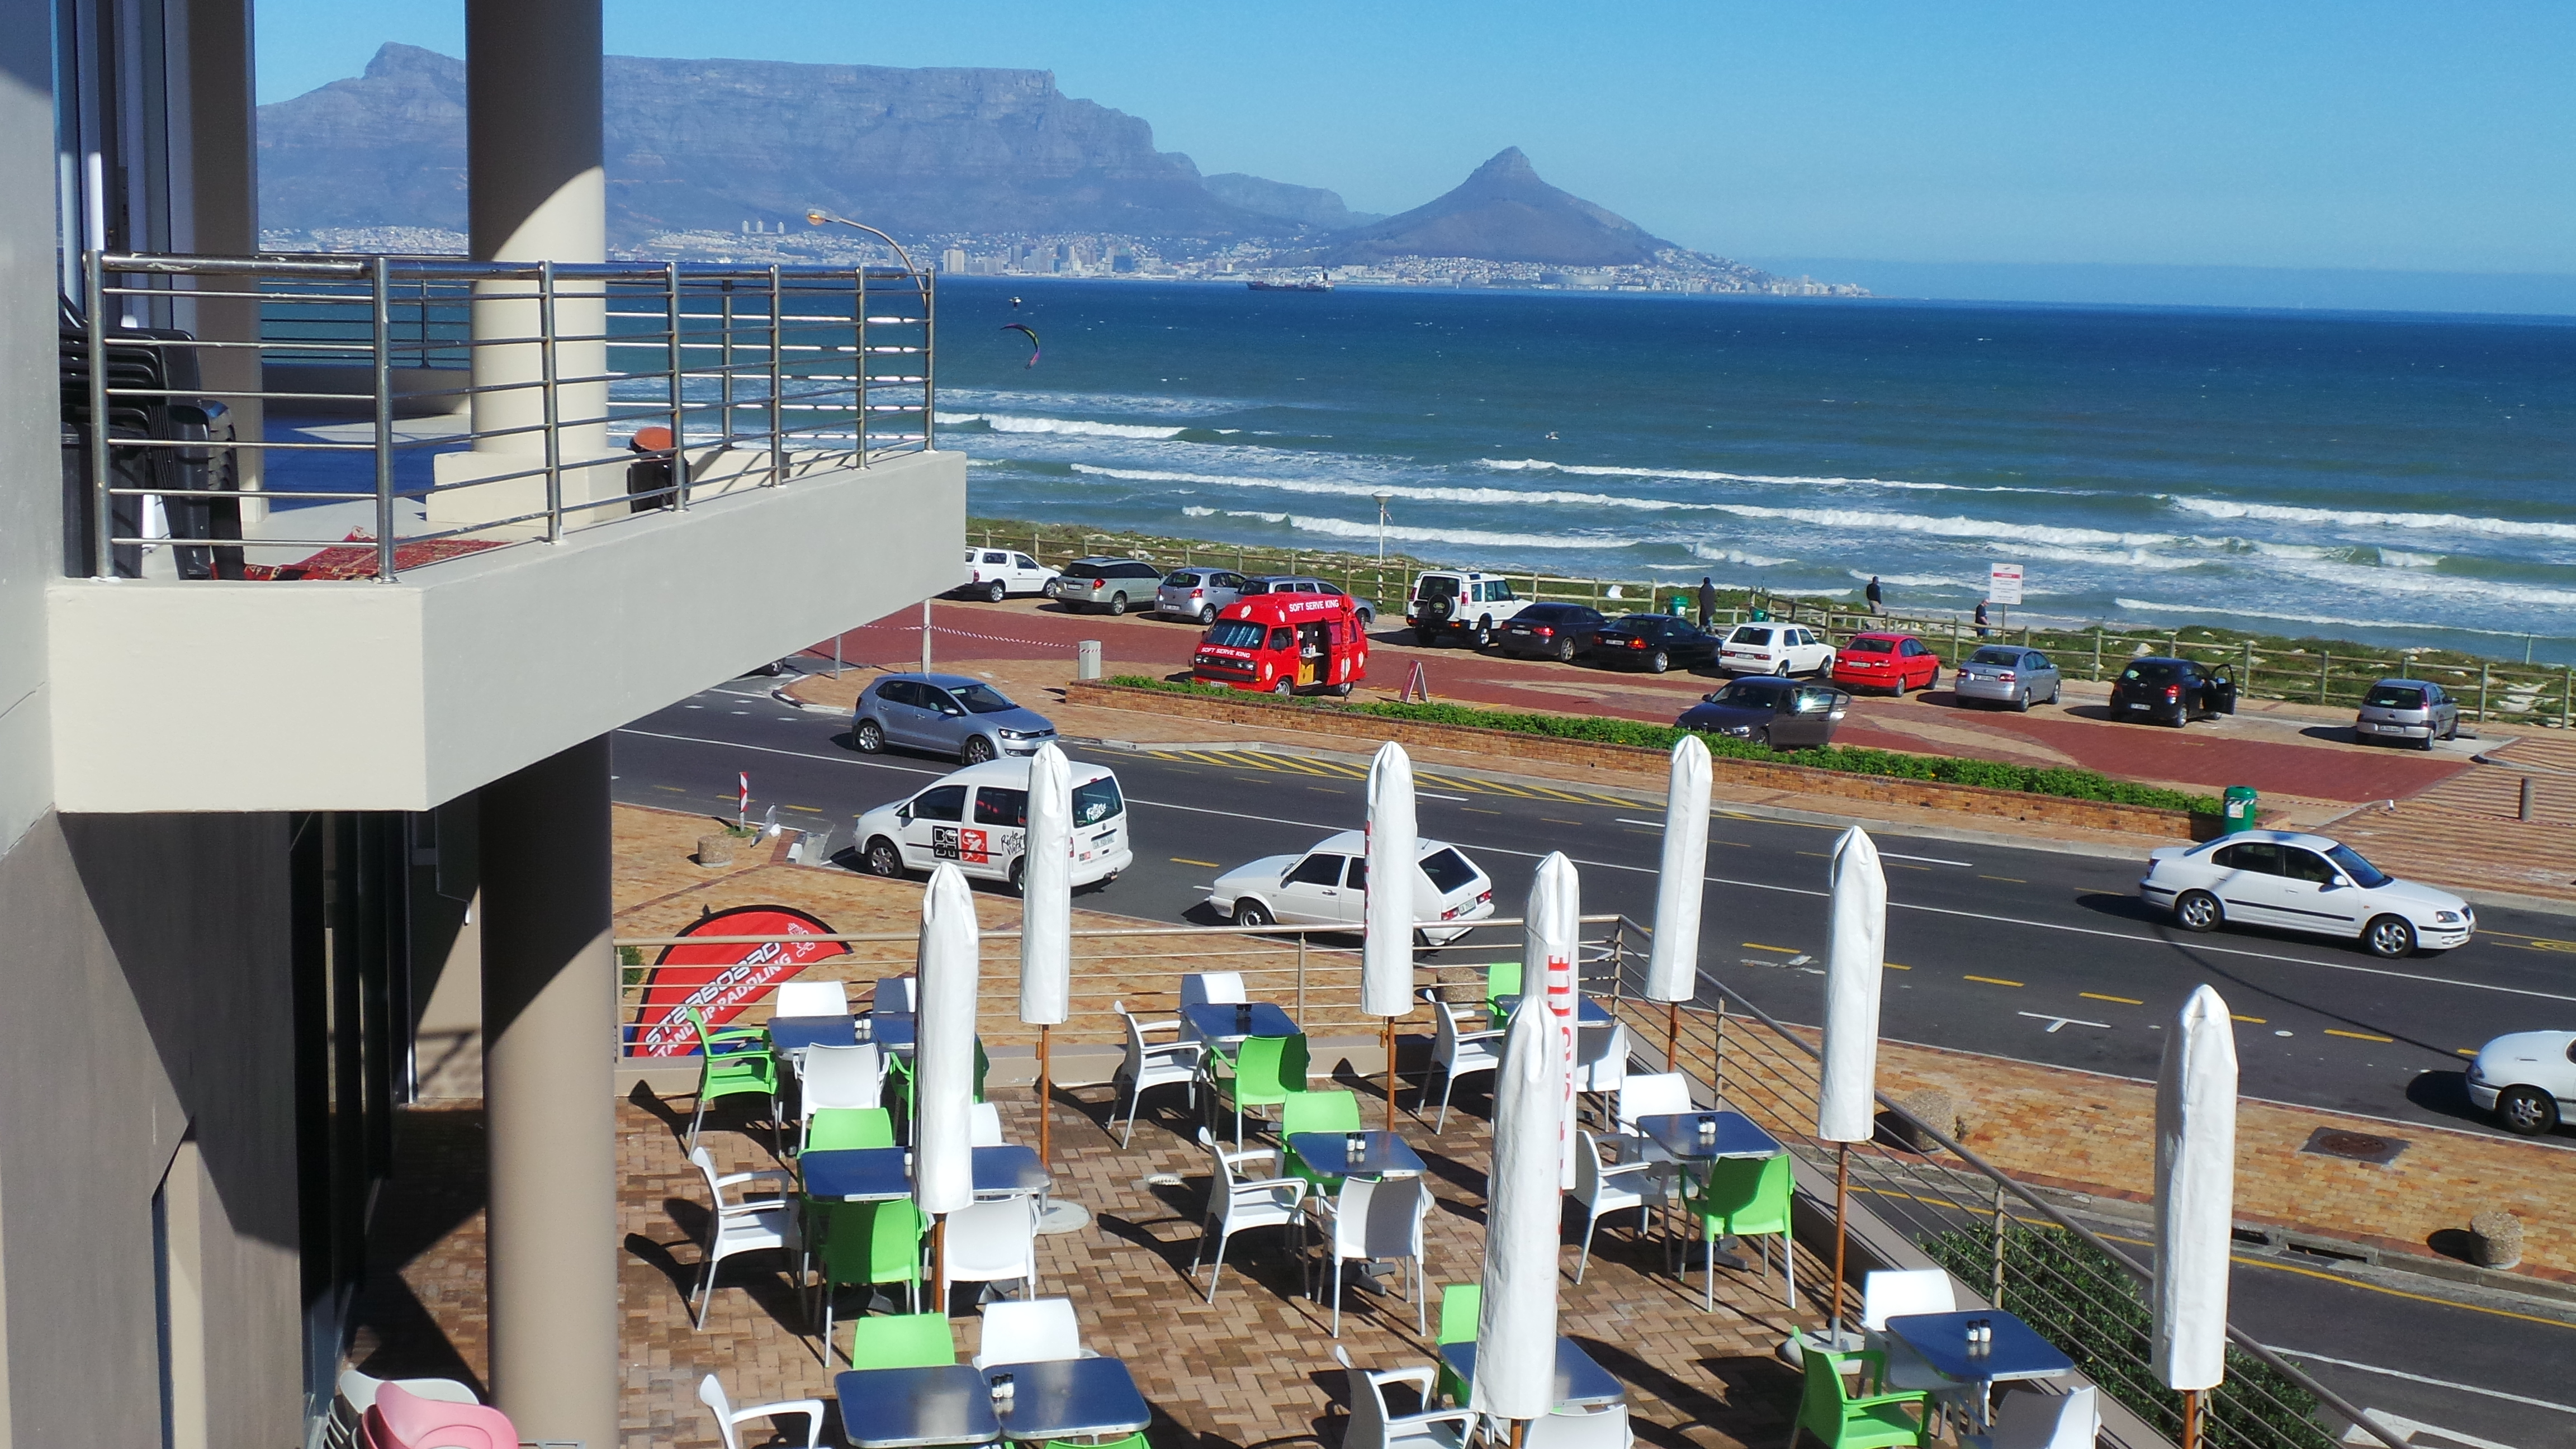 Portico one bedroom apartment in Portico, Blouberg has Table Mountain view, Ocean view